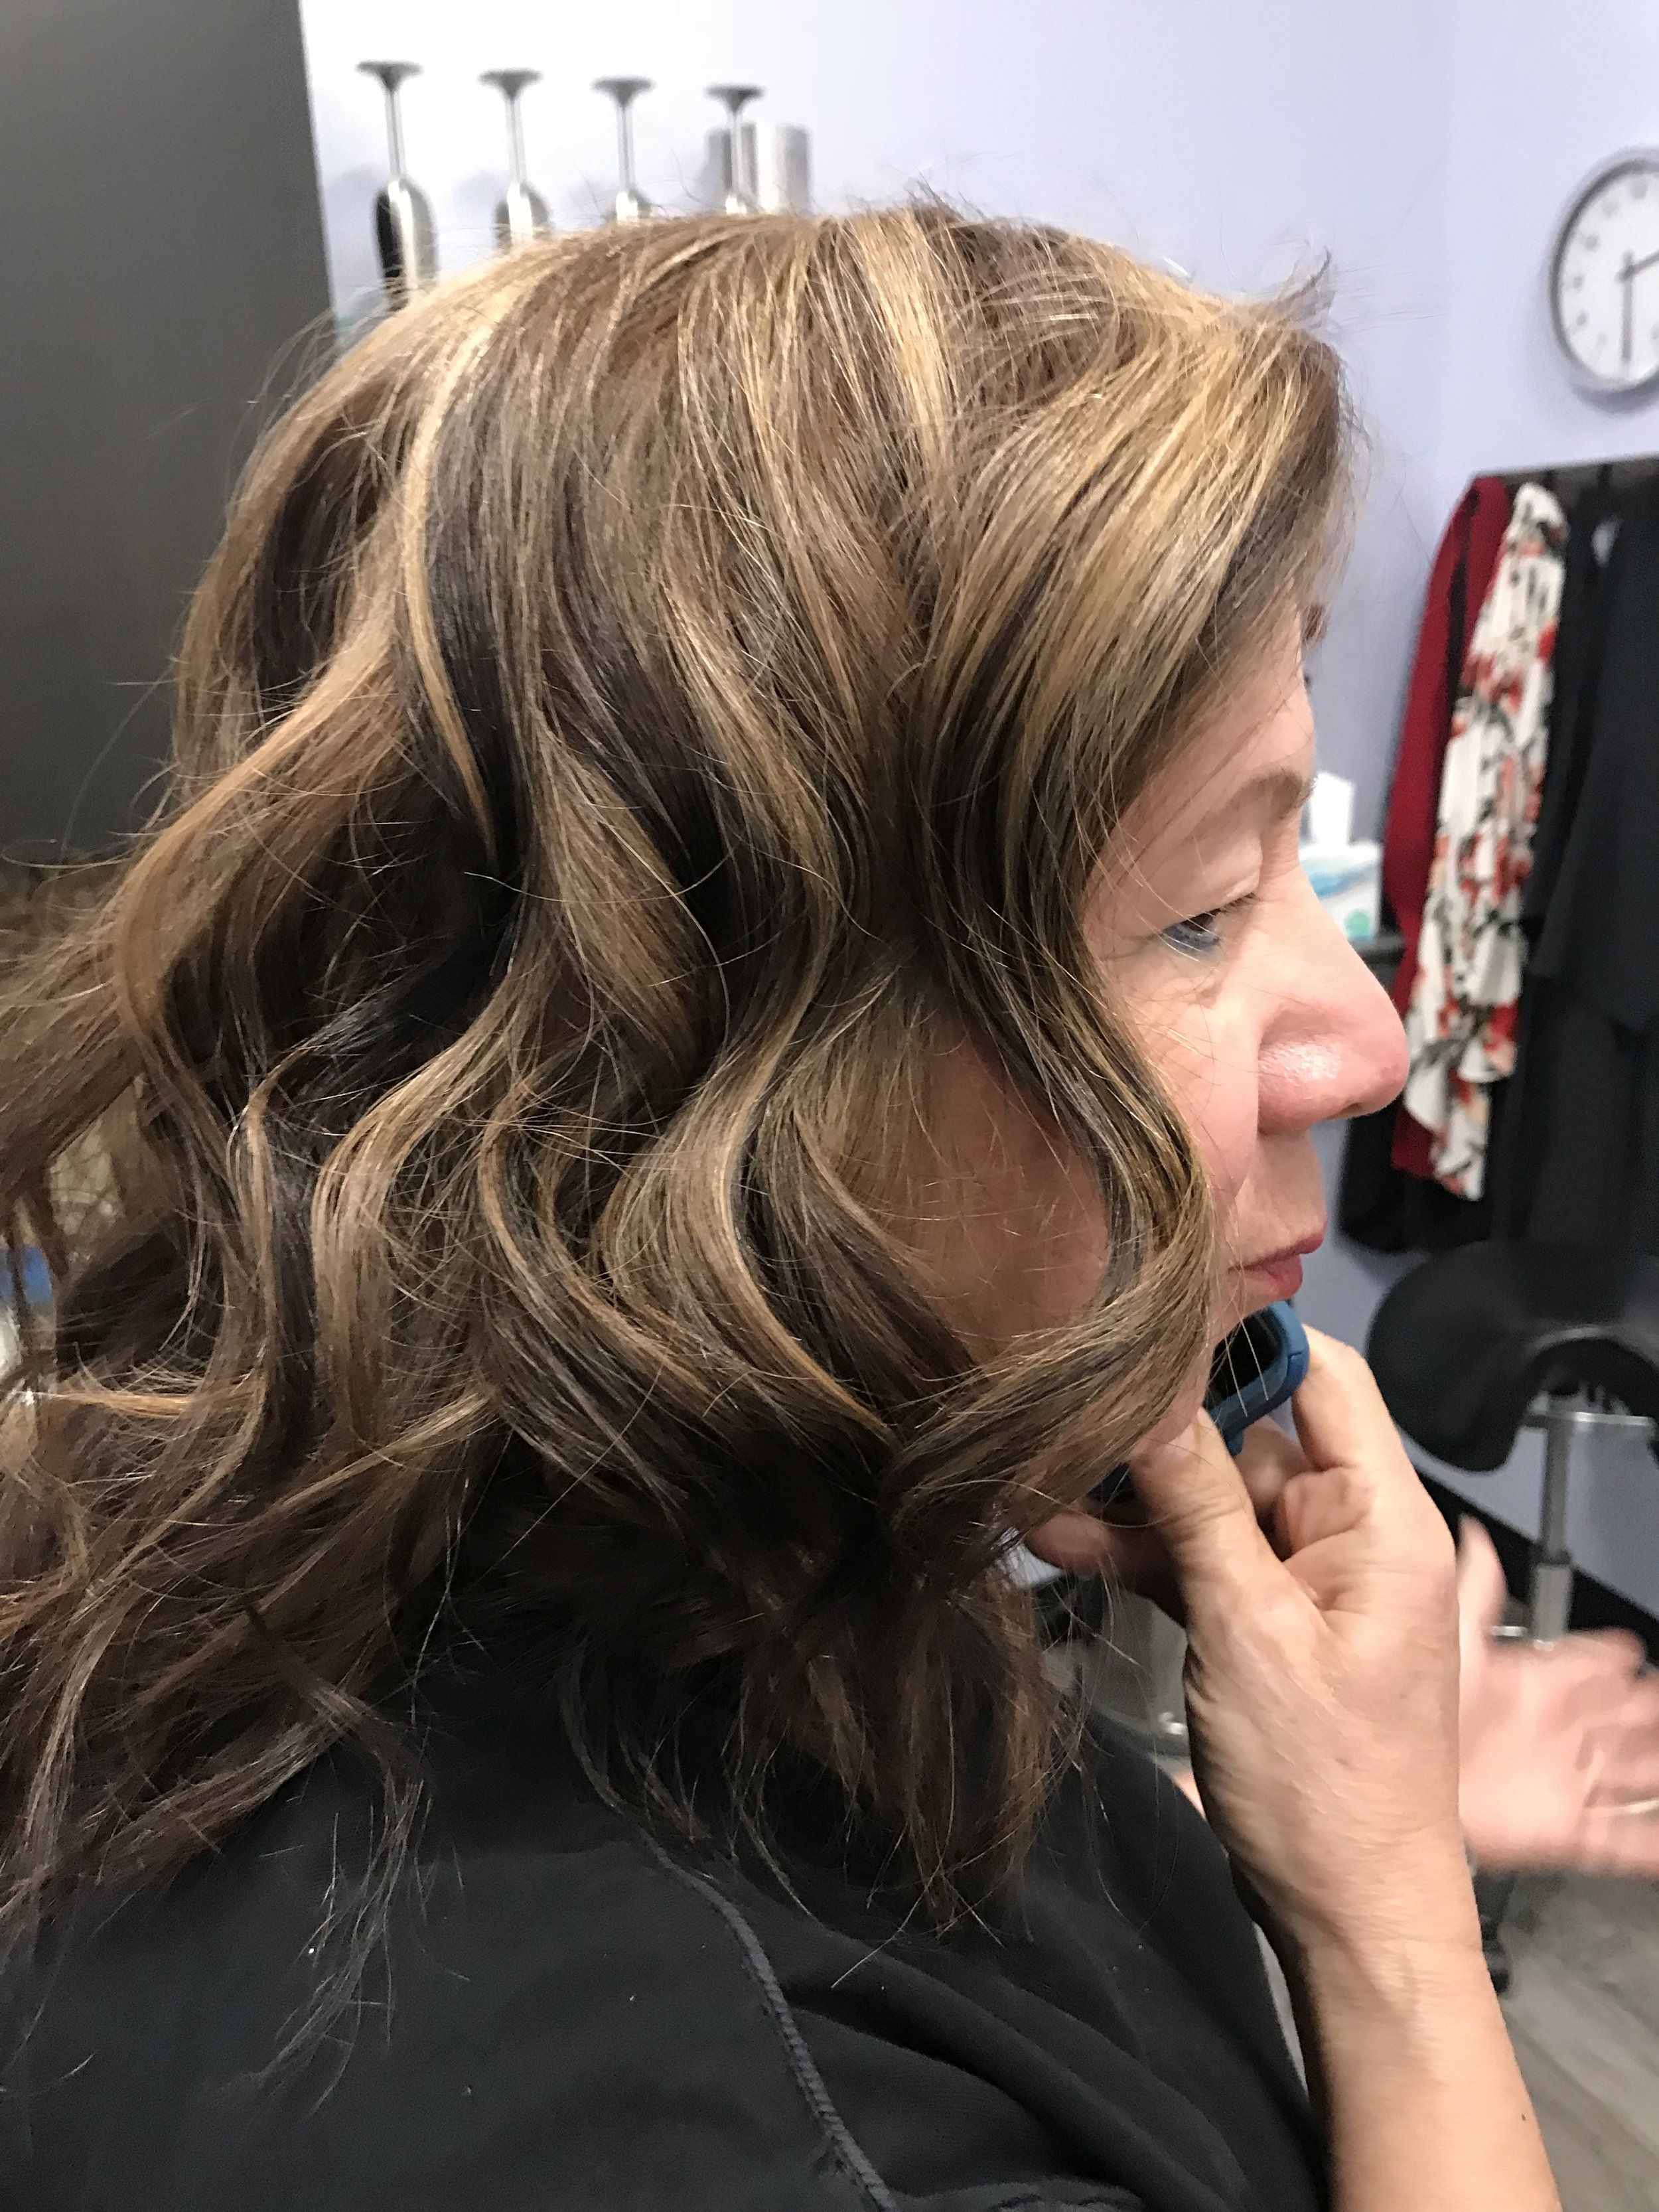 This is one of Linda's after photo's from her balayage procedure. We did a color retouch on Linda, lowlights for depth and dimension and balayage for the lighter tones in her hair. We did tone the lighter shades.